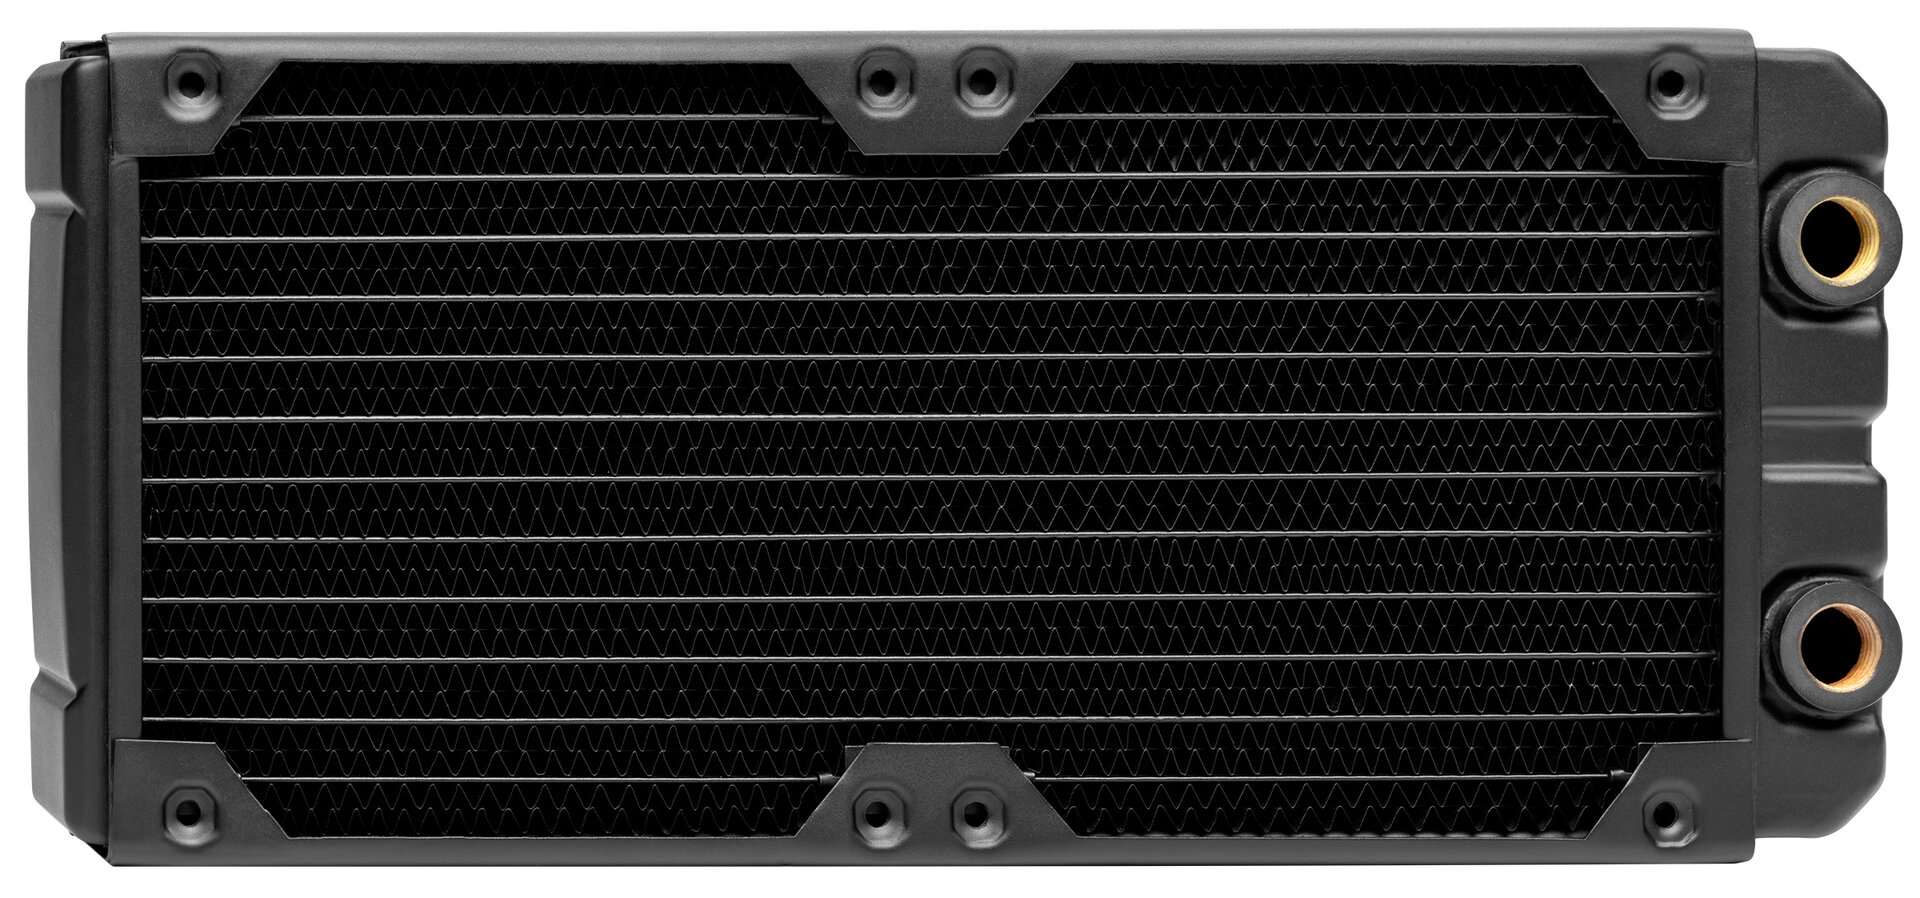 Corsair Hydro X XR7: Tiefer 240-mm-Radiator